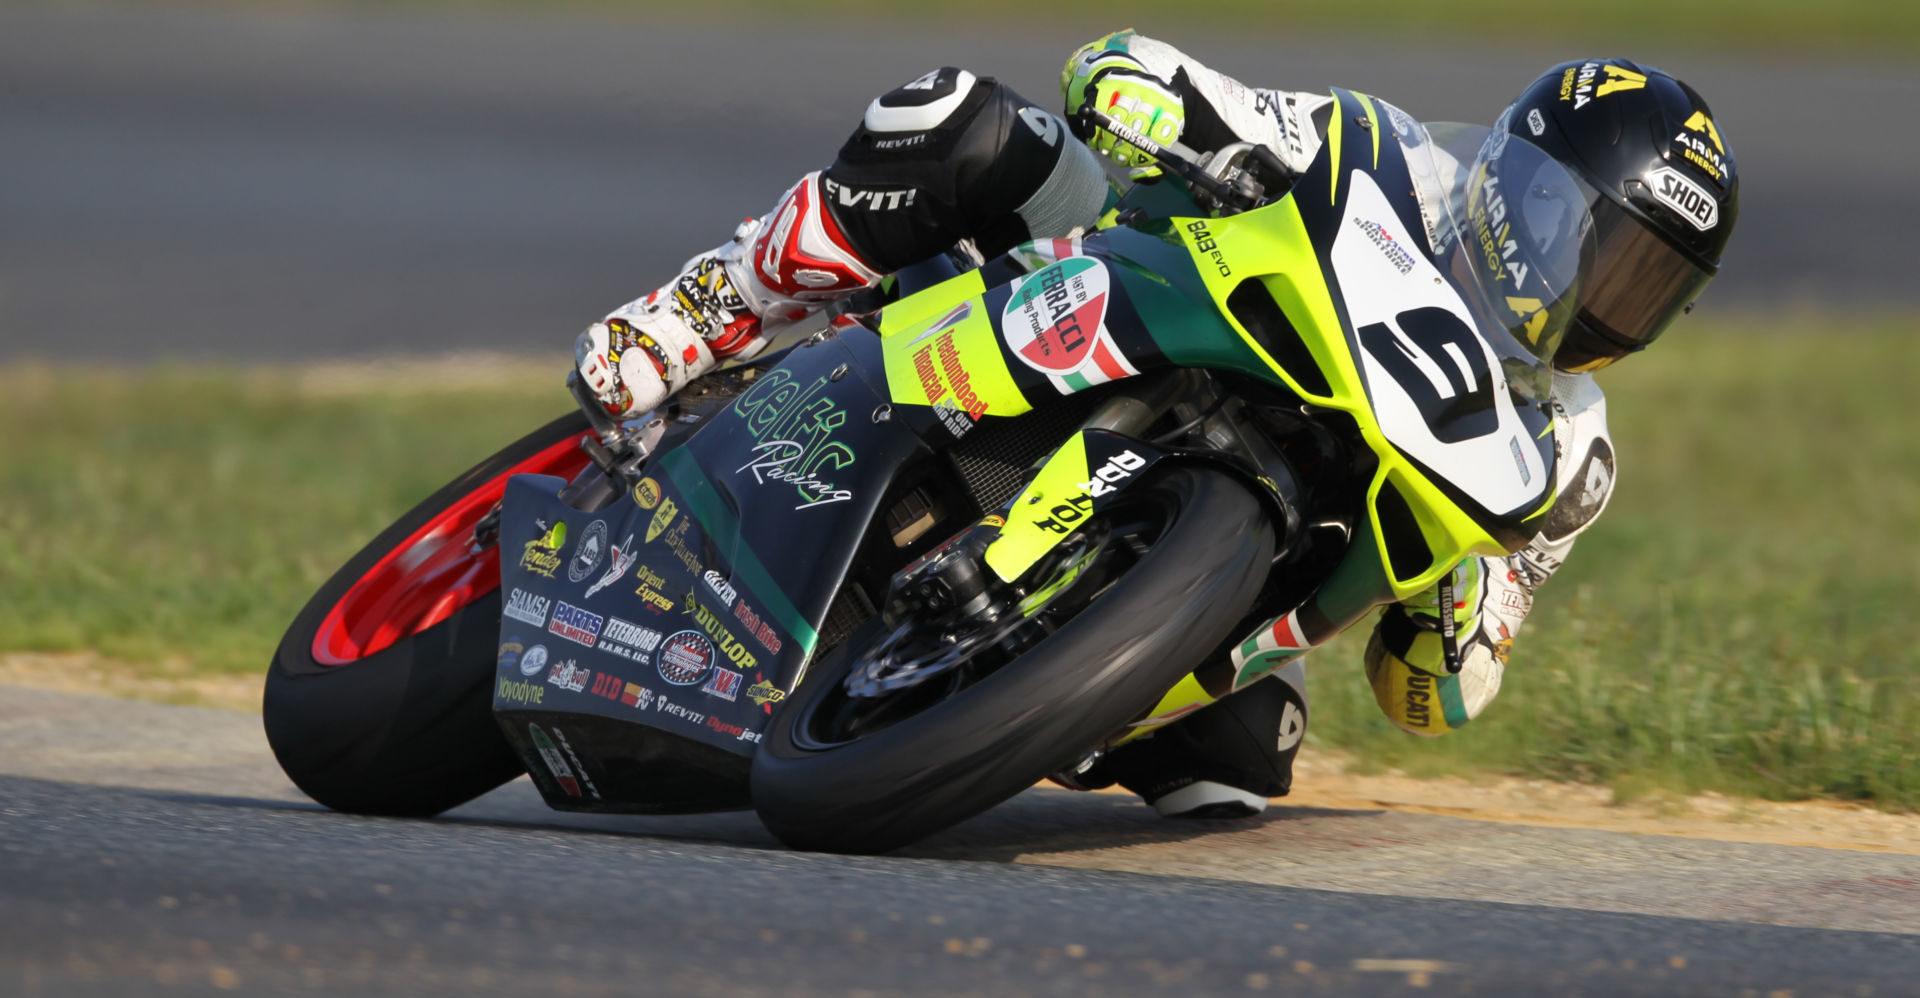 PJ Jacobsen (9) riding a Celtic Racing/Fast by Ferracci Ducati 848evo in the 2011 AMA Pro Daytona SportBike Championship. Photo by Brian J. Nelson.